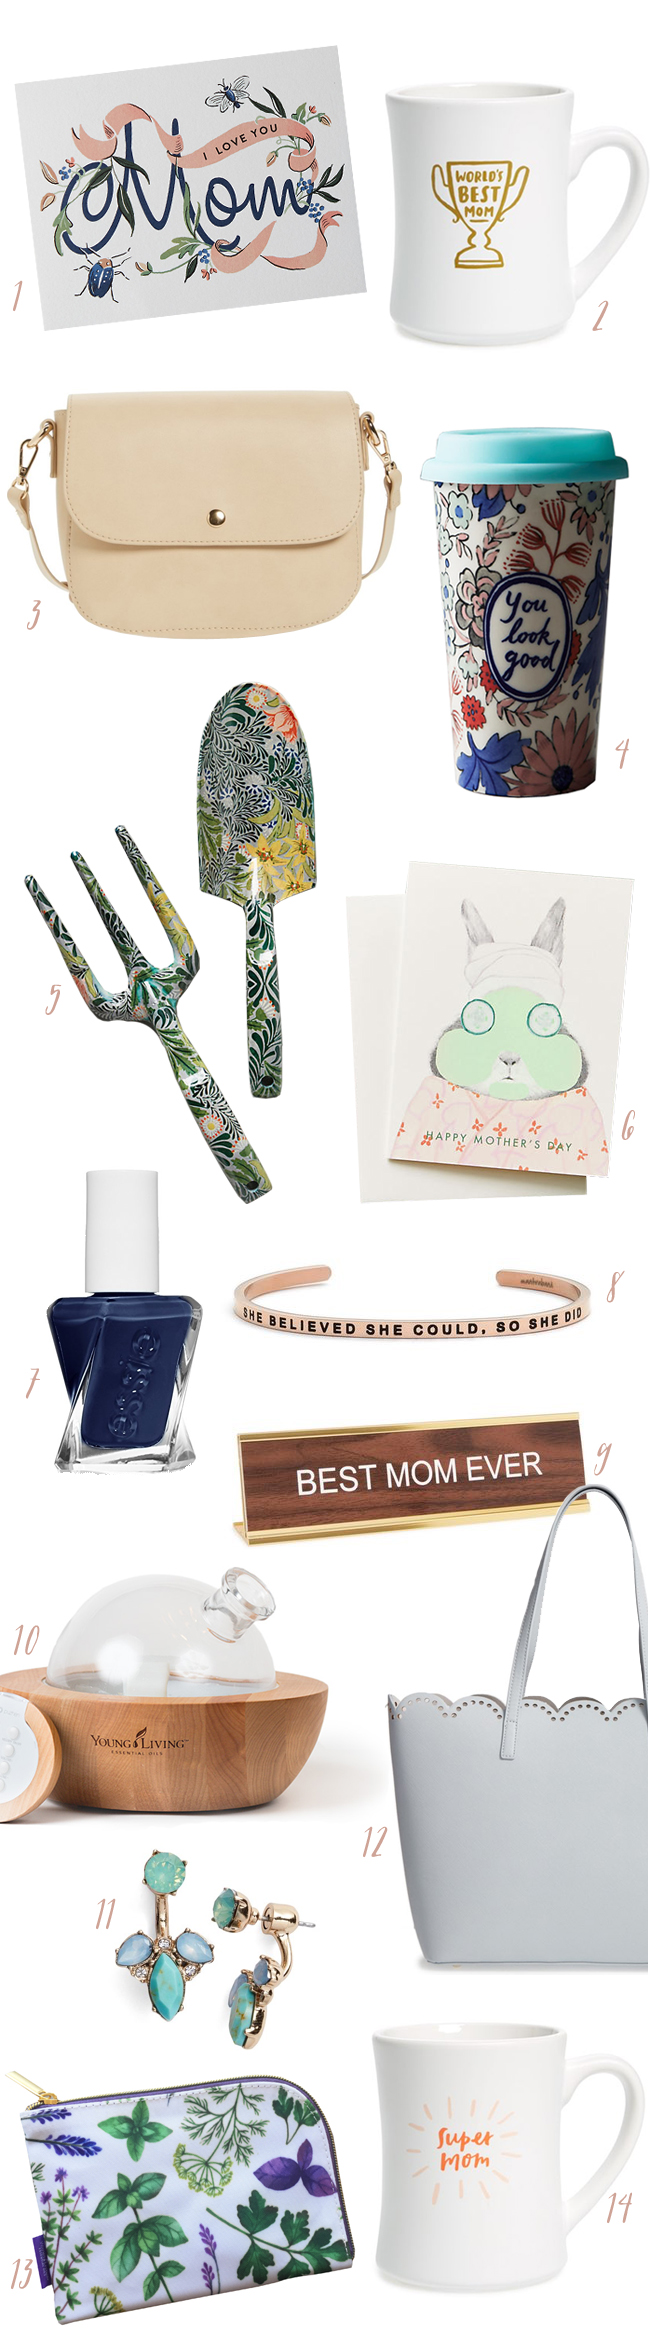 Gather: Gift Ideas for Mother's Day